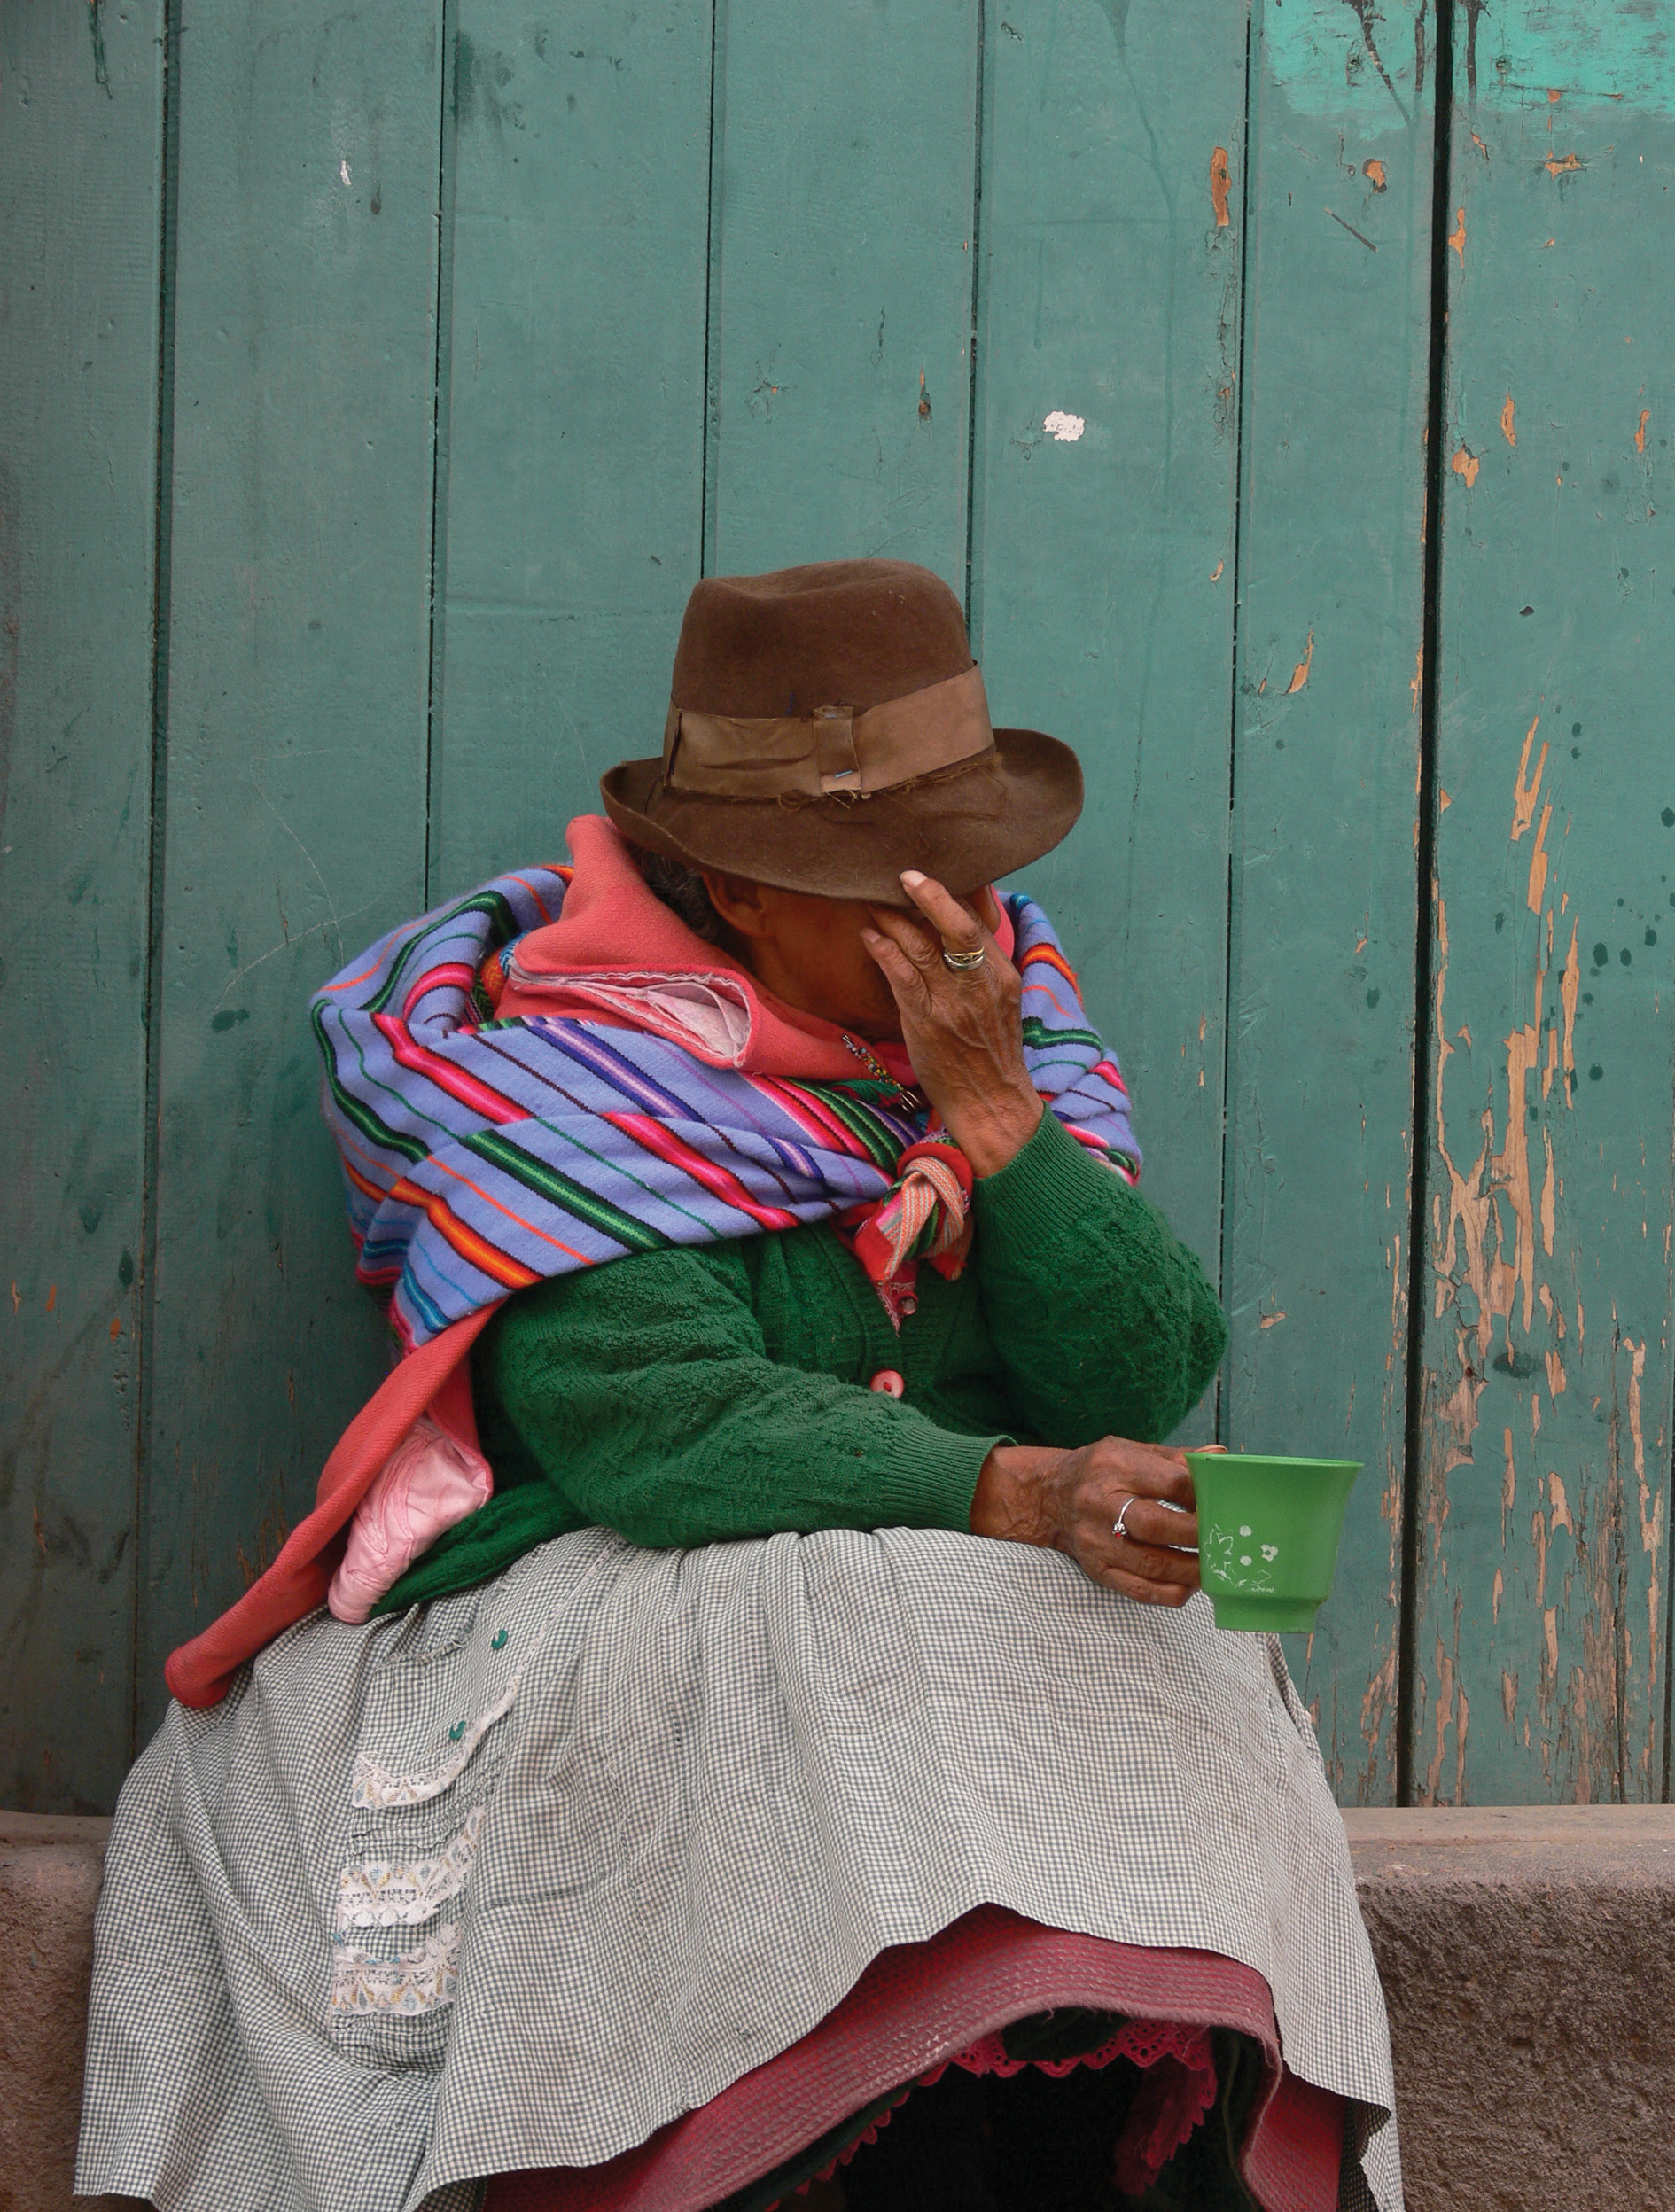 Indigenous women in Peru still fear repercussions as they seek justice for the forced sterilizations they suffered two decades ago.